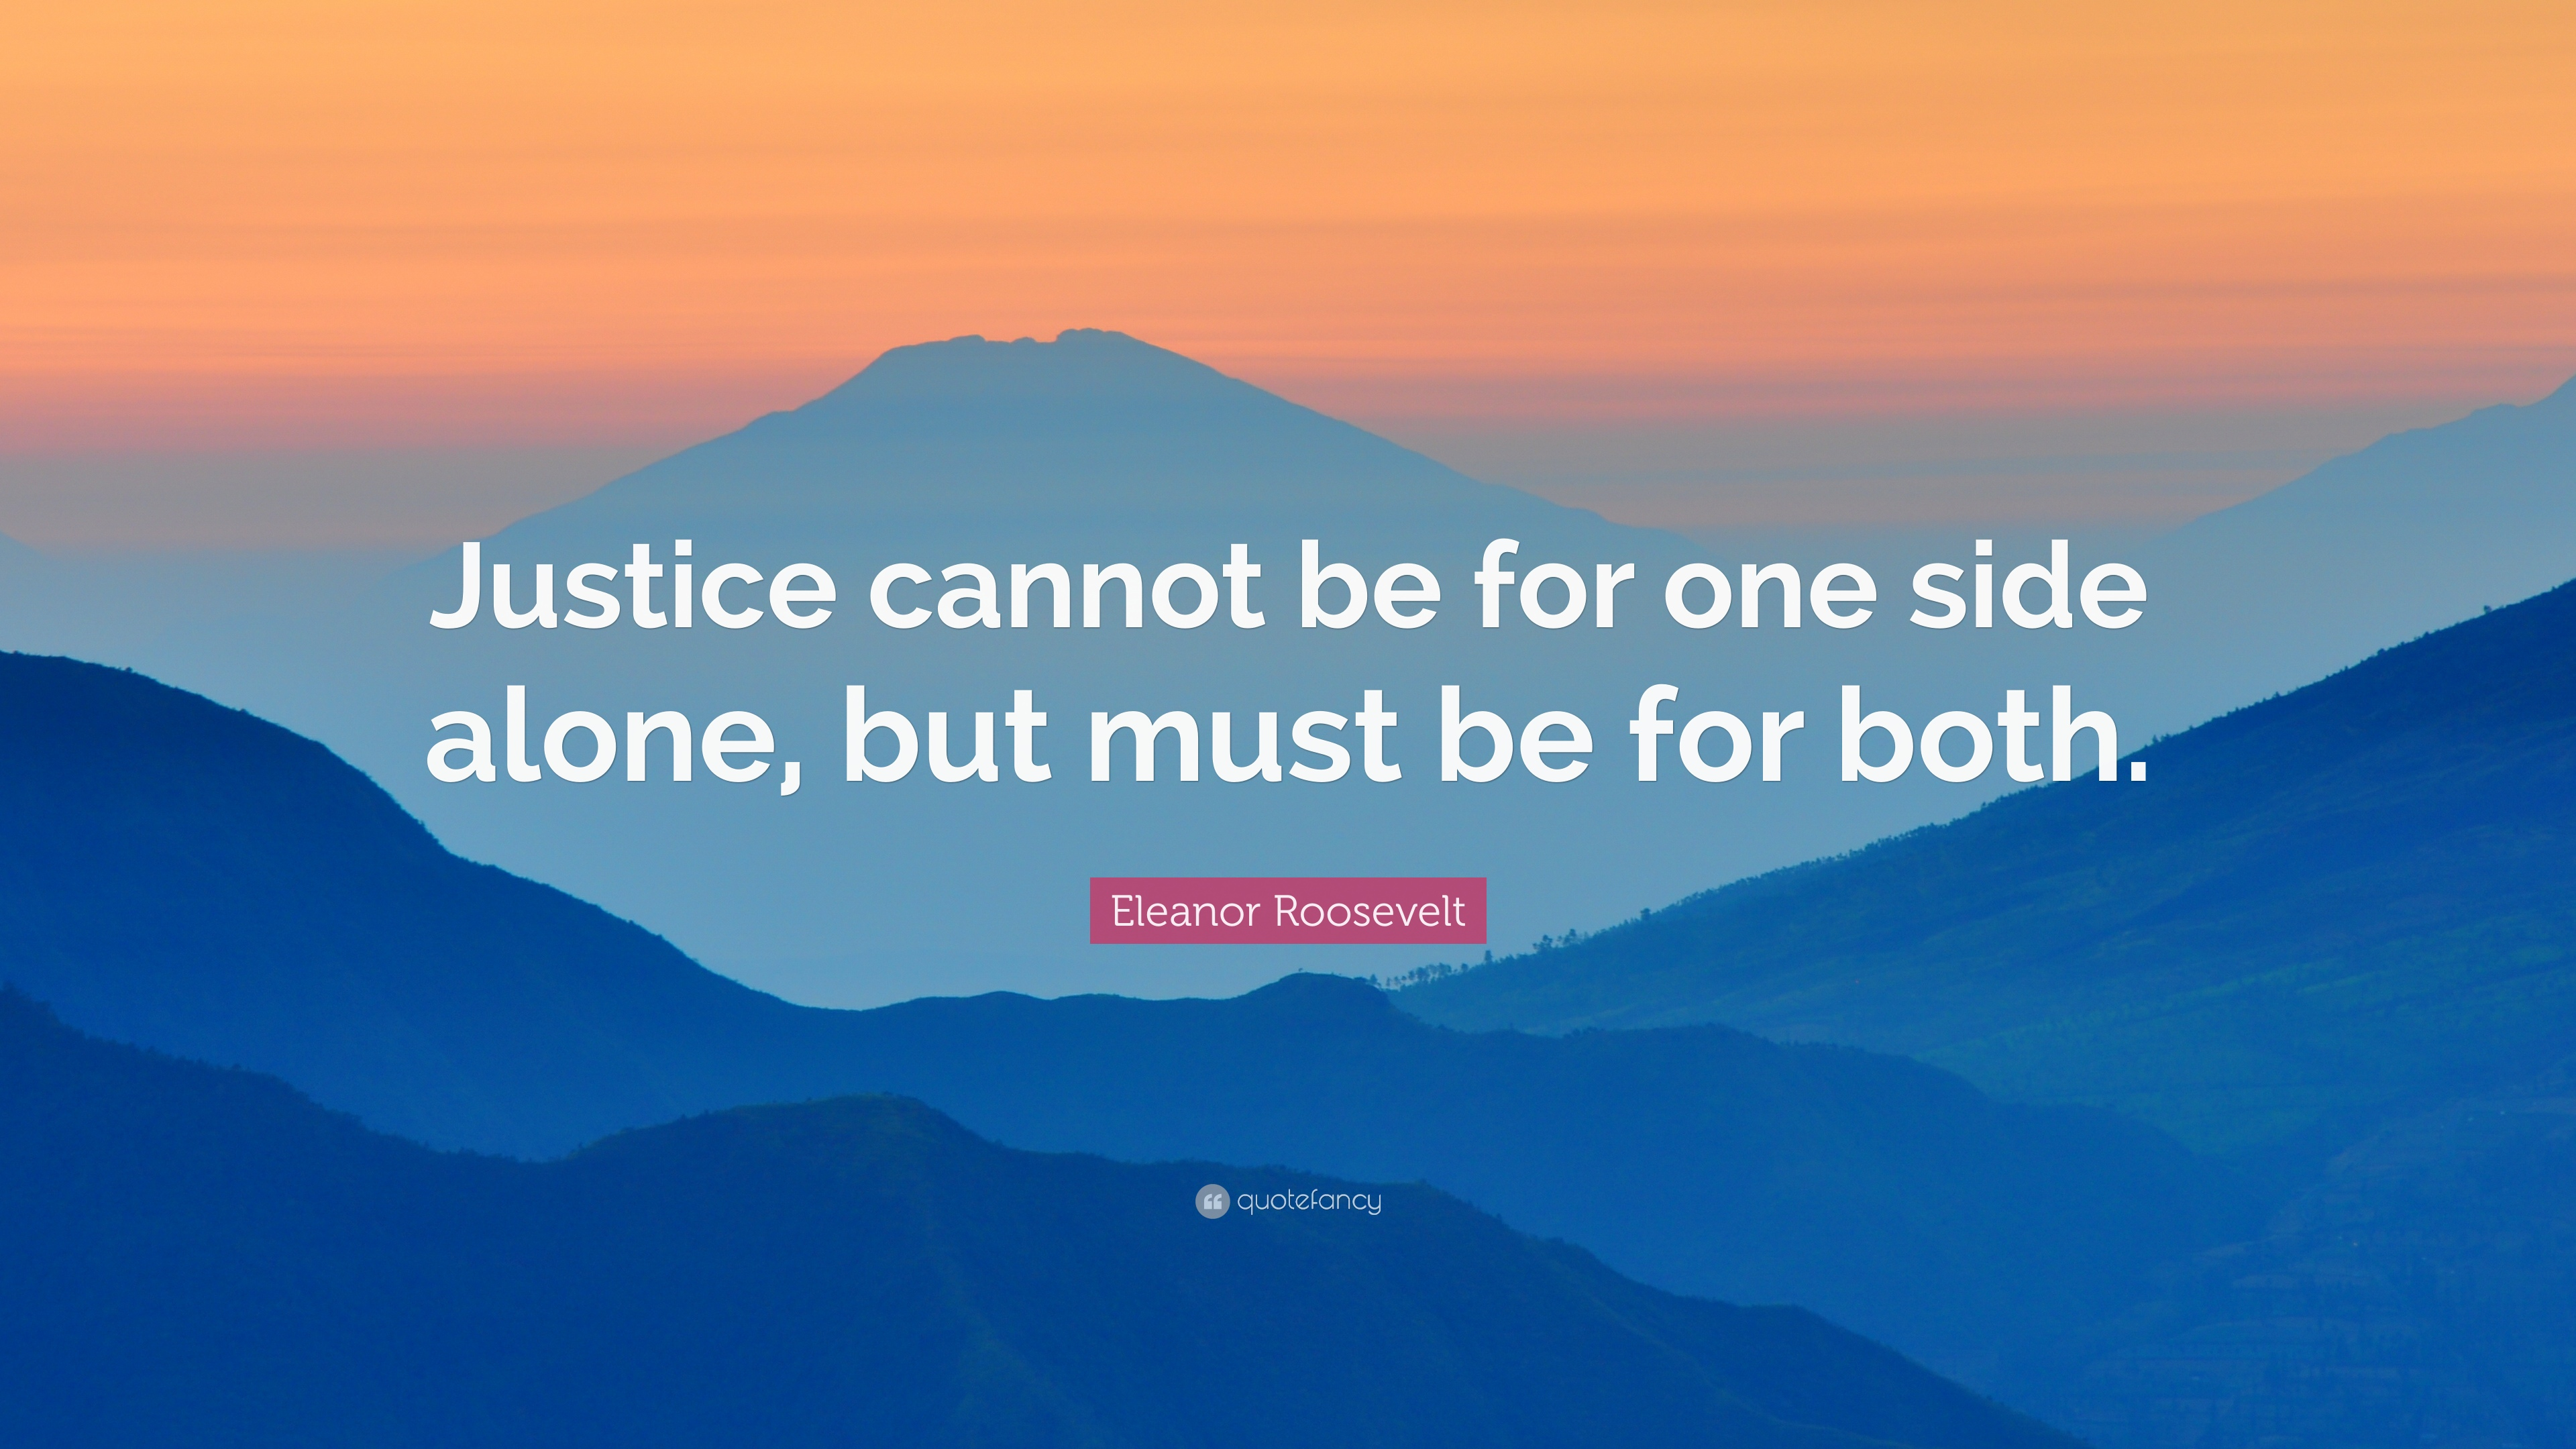 Eleanor Roosevelt Quote Justice Cannot Be For One Side Alone But